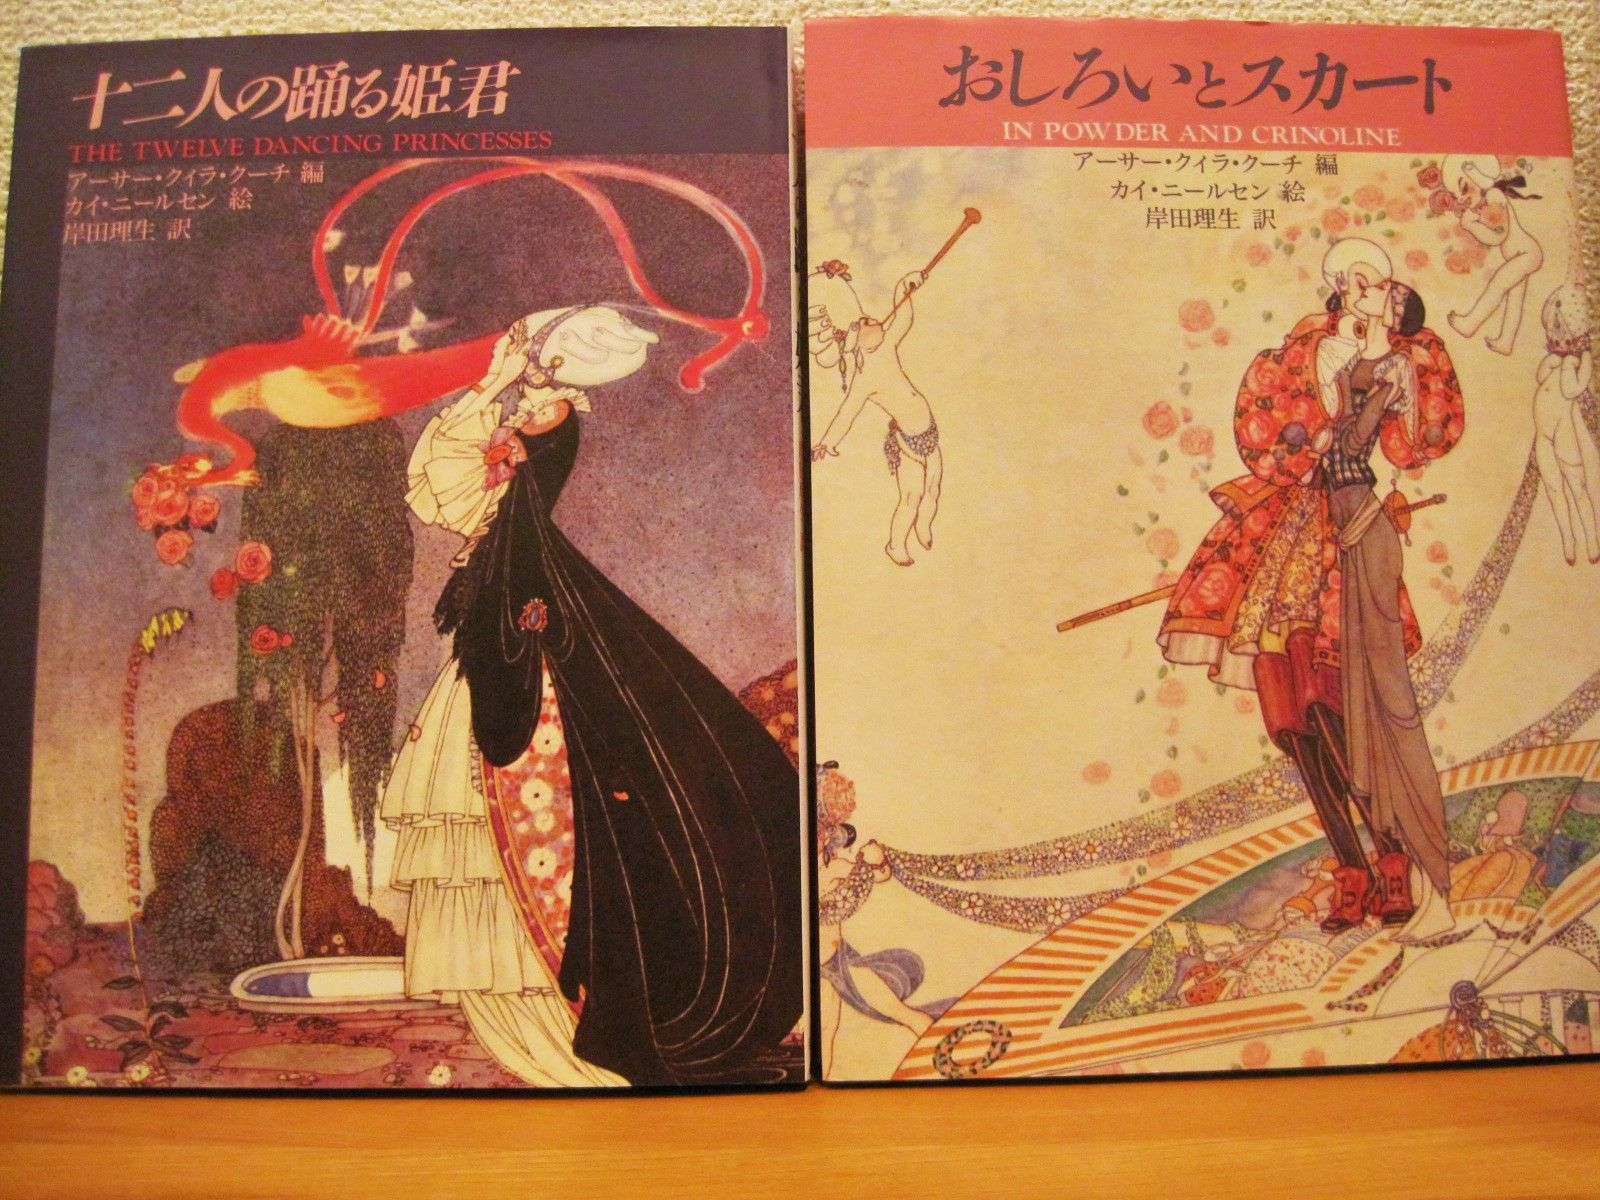 新書館「十二人の踊る姫君」「おしろいとスカート」1994:Sir Arthur Quiller-Couch/The Twelve Dancing Princesses and Other Fairy Tales